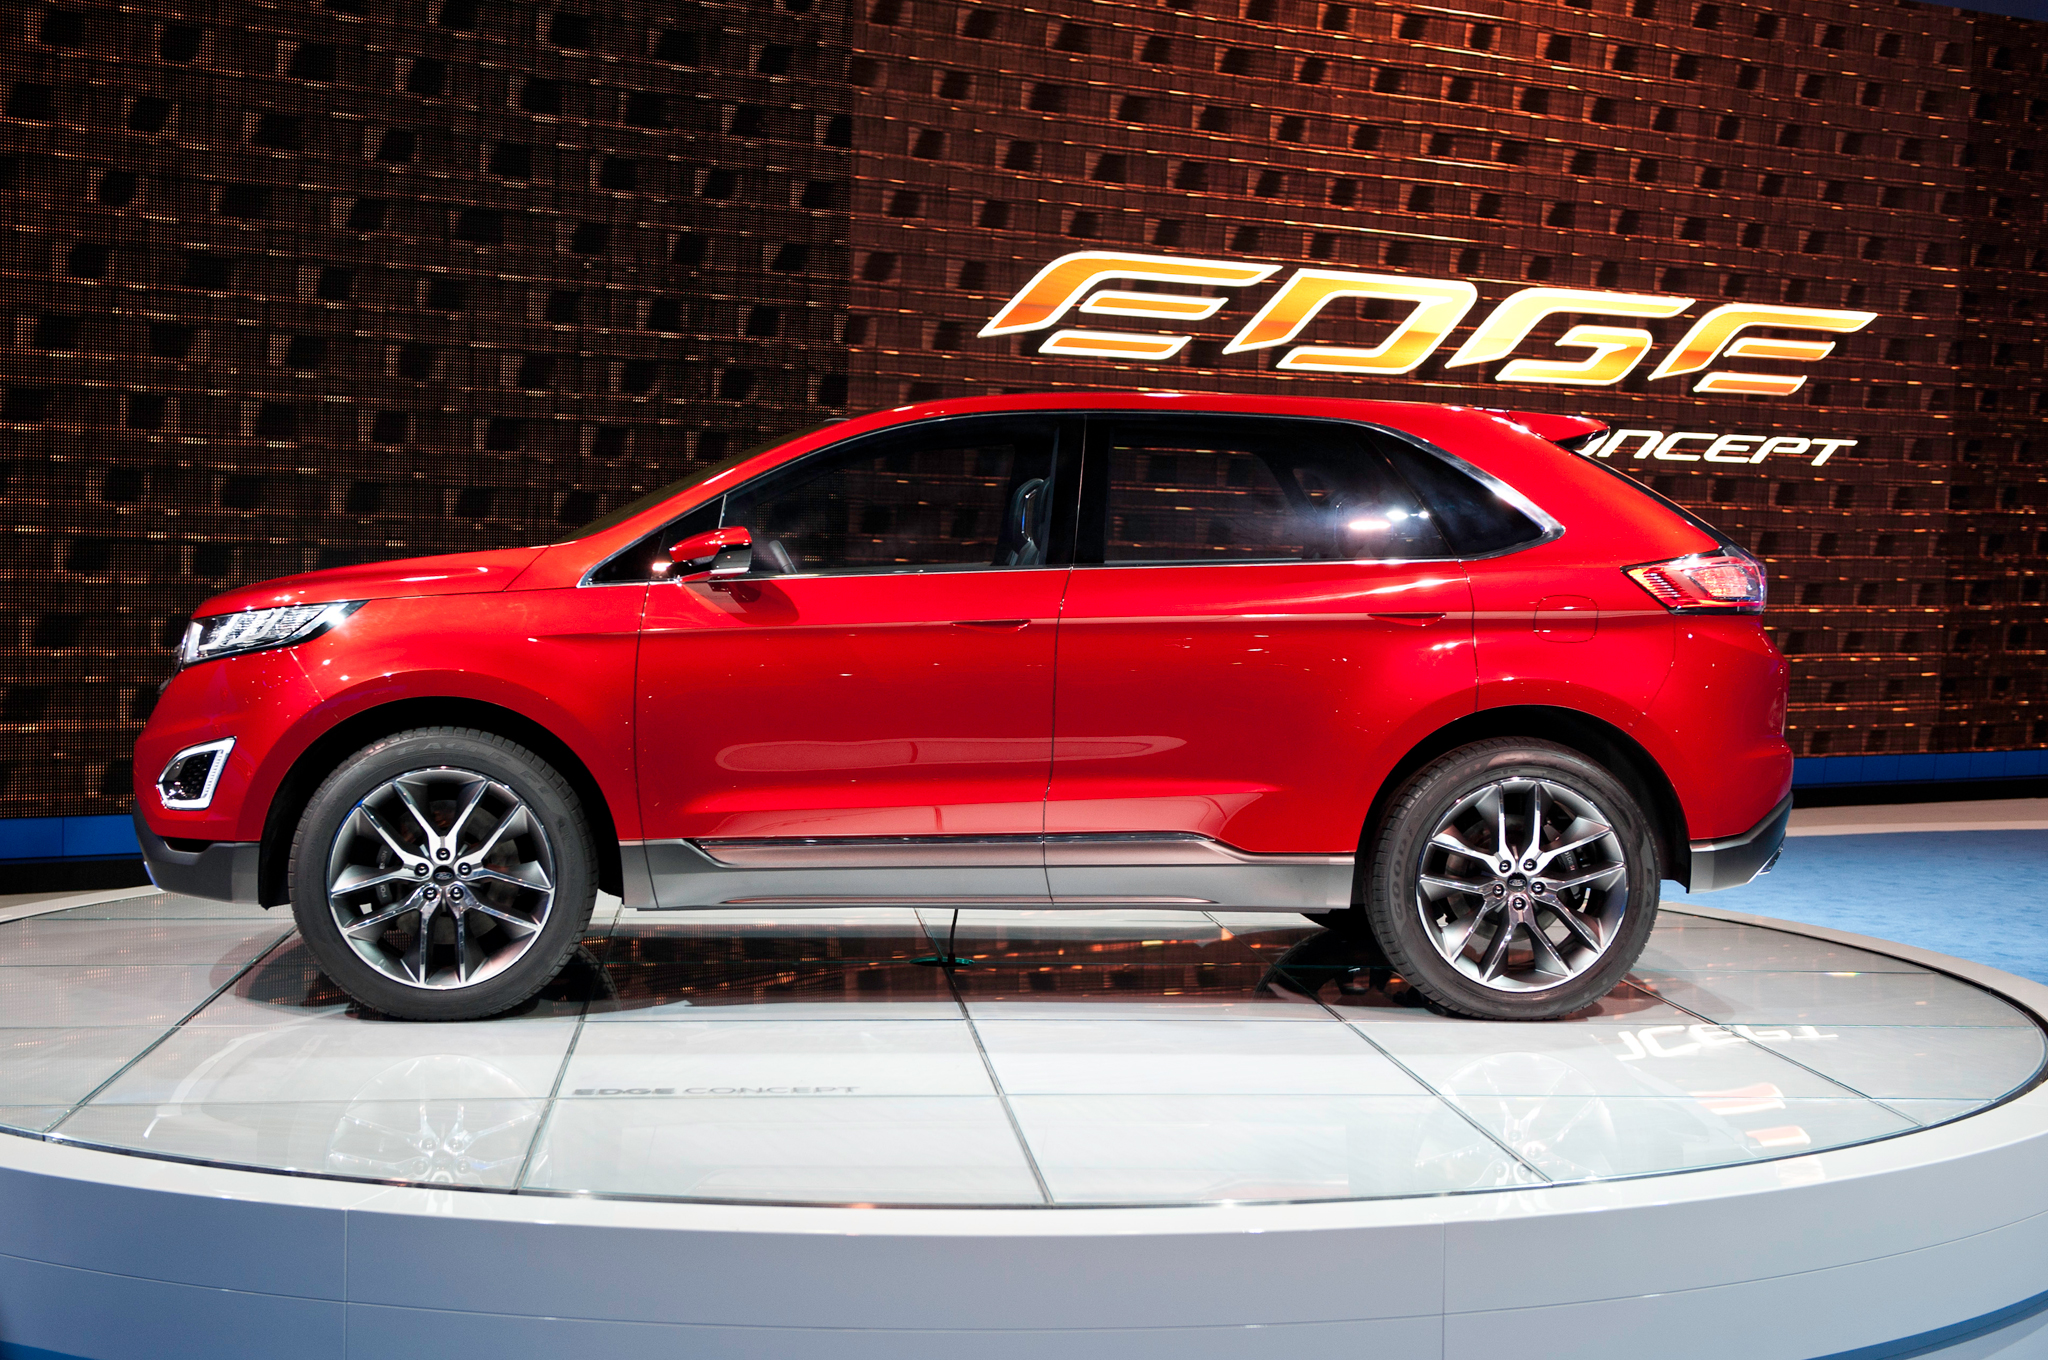 Ford Edge 2015 Redesign | www.pixshark.com - Images Galleries With A Bite!